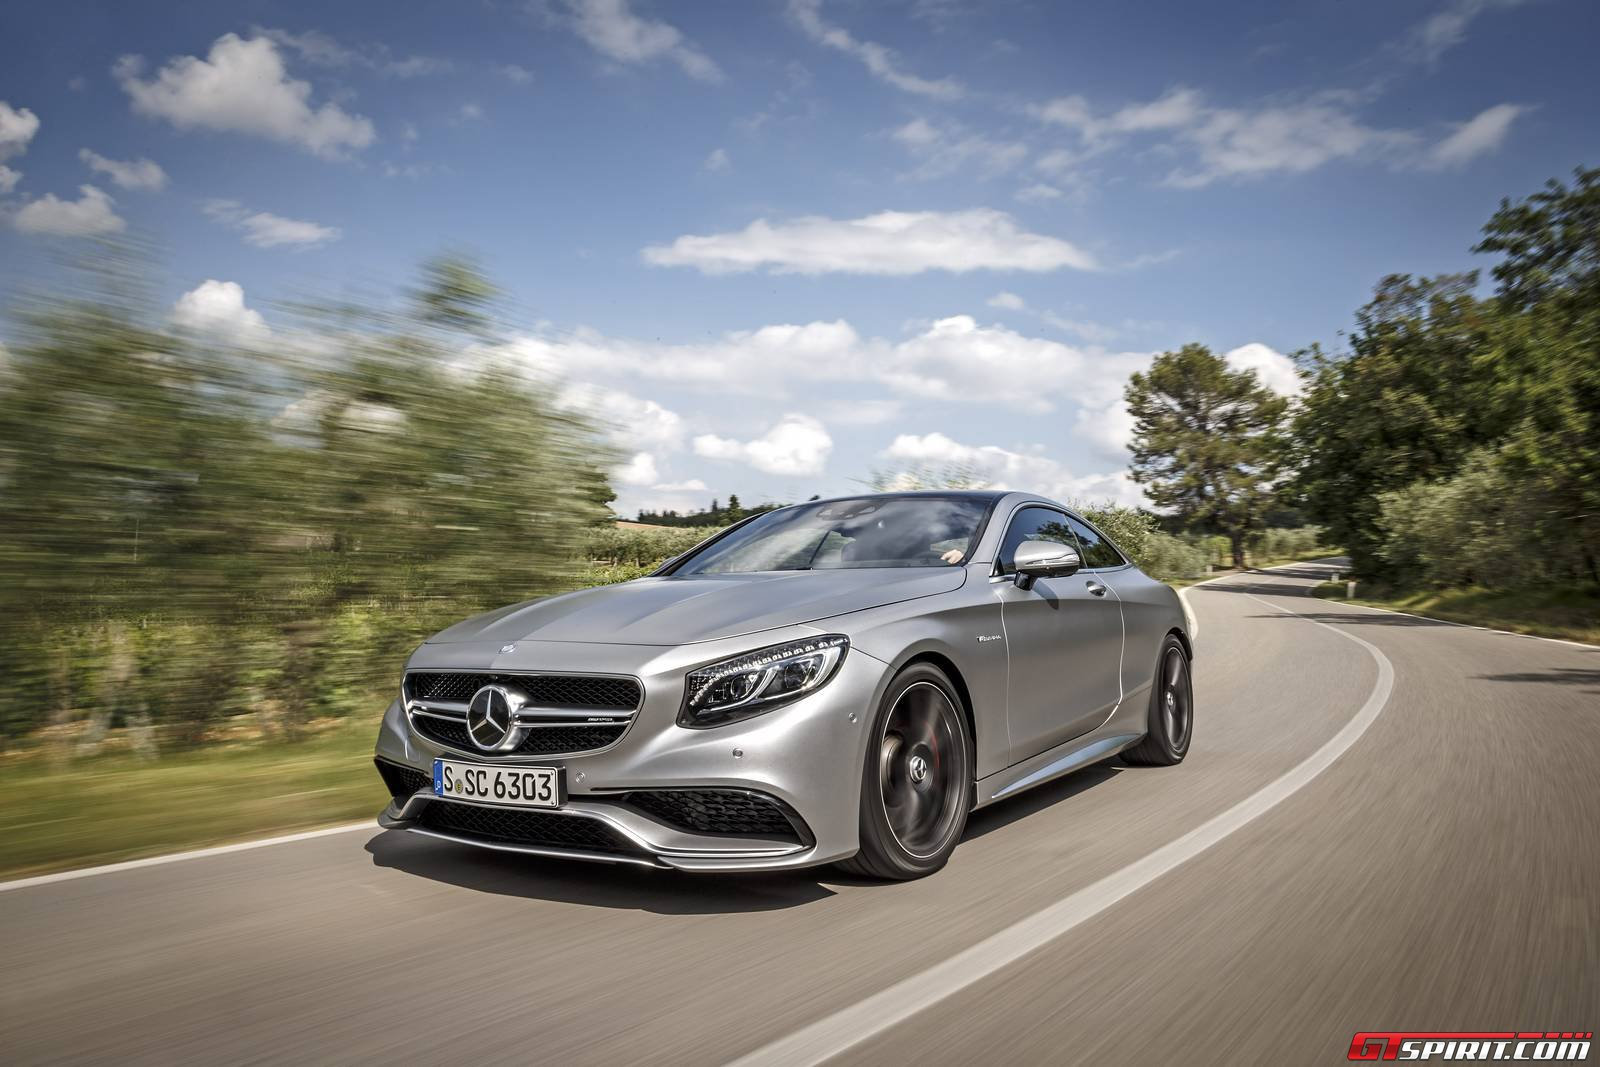 2015 mercedes benz s500 s63 amg coupe review gtspirit mercedes benz malvernweather Gallery